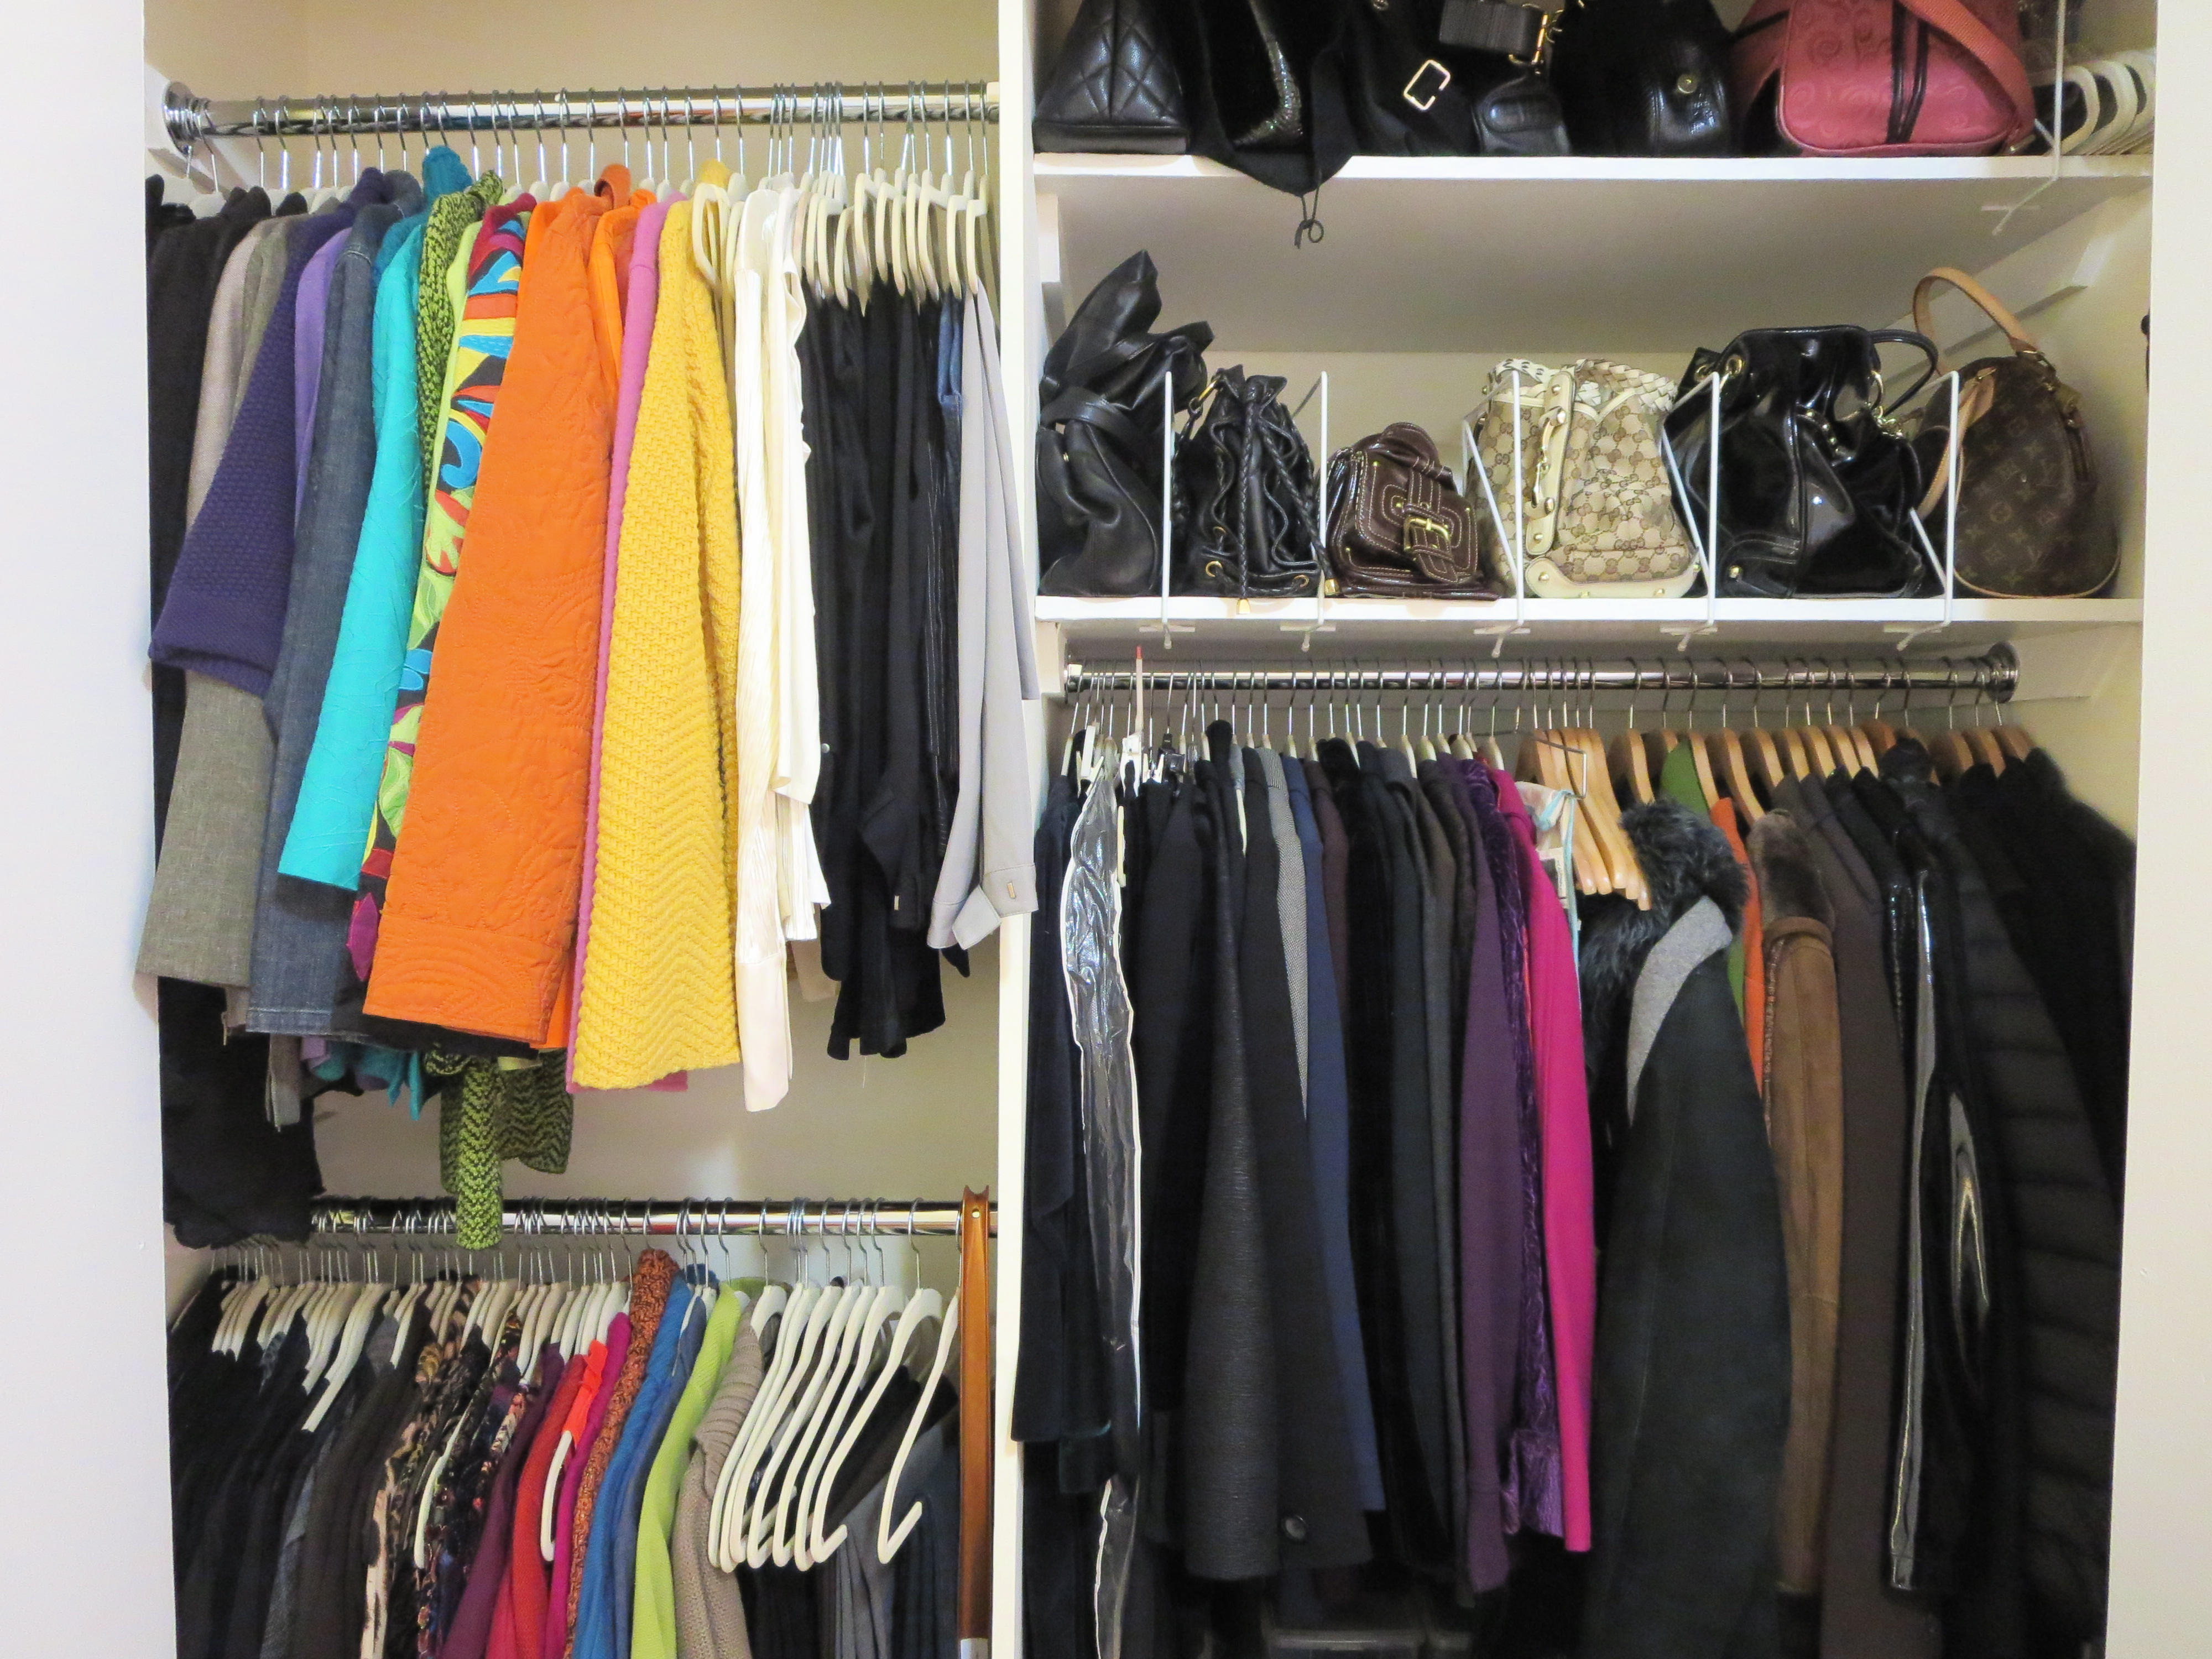 The Order Obsessed Ways To Add Lighting A Closet Without Wiring Apartment Therapy Place Had Be Put Together Fast And As Inexpensive Possible Luckily I Was Able Reuse Existing Pieces From Previous